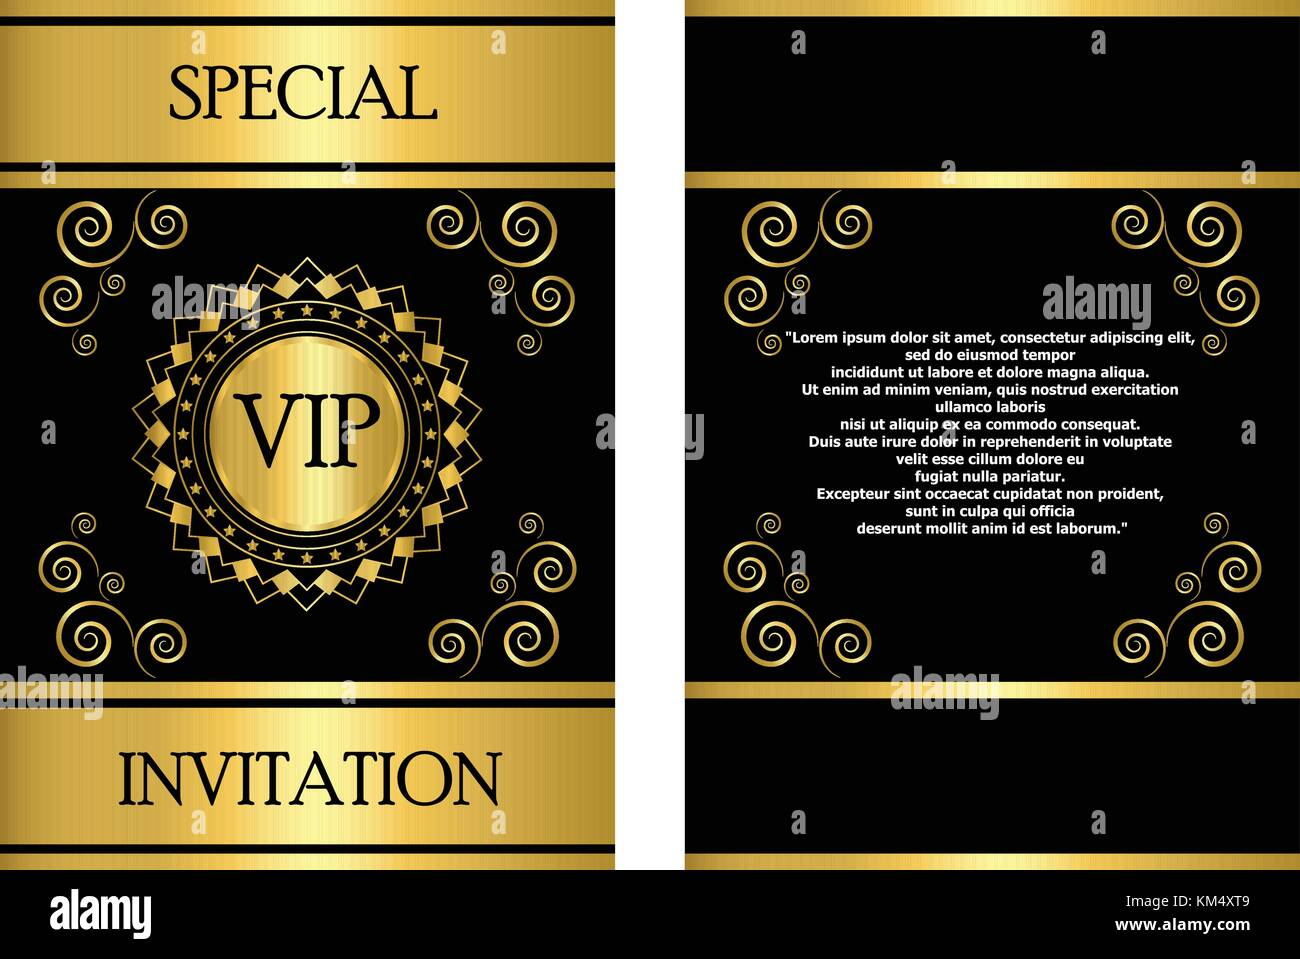 A golden vip invitation card template that can be used for stock a golden vip invitation card template that can be used for businesscompanyevent or party invitation stopboris Choice Image